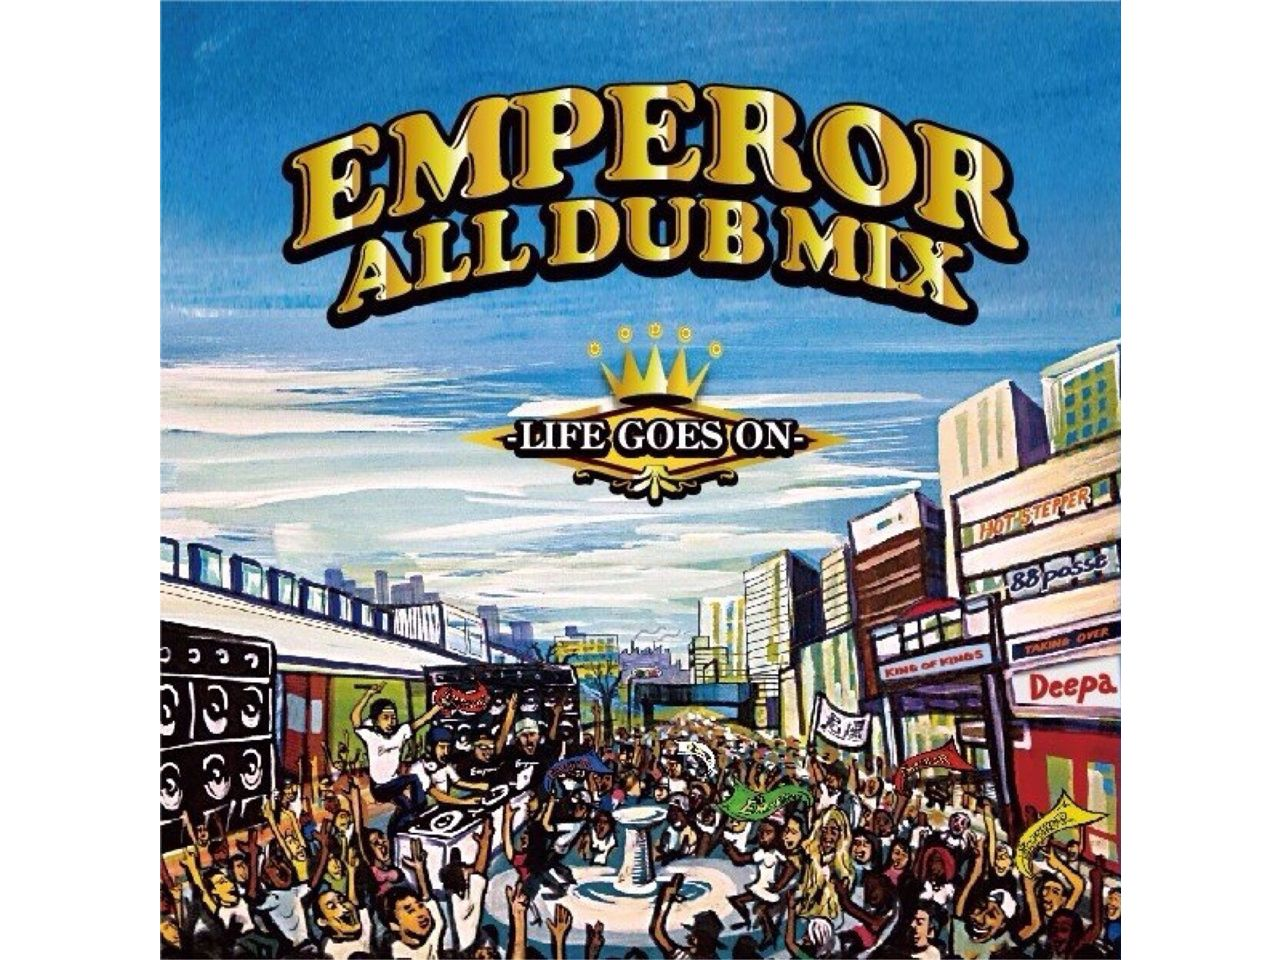 EMPEROR ALL DUB MIX ~LIFE GOES ON~ - EMPEROR SOUND -